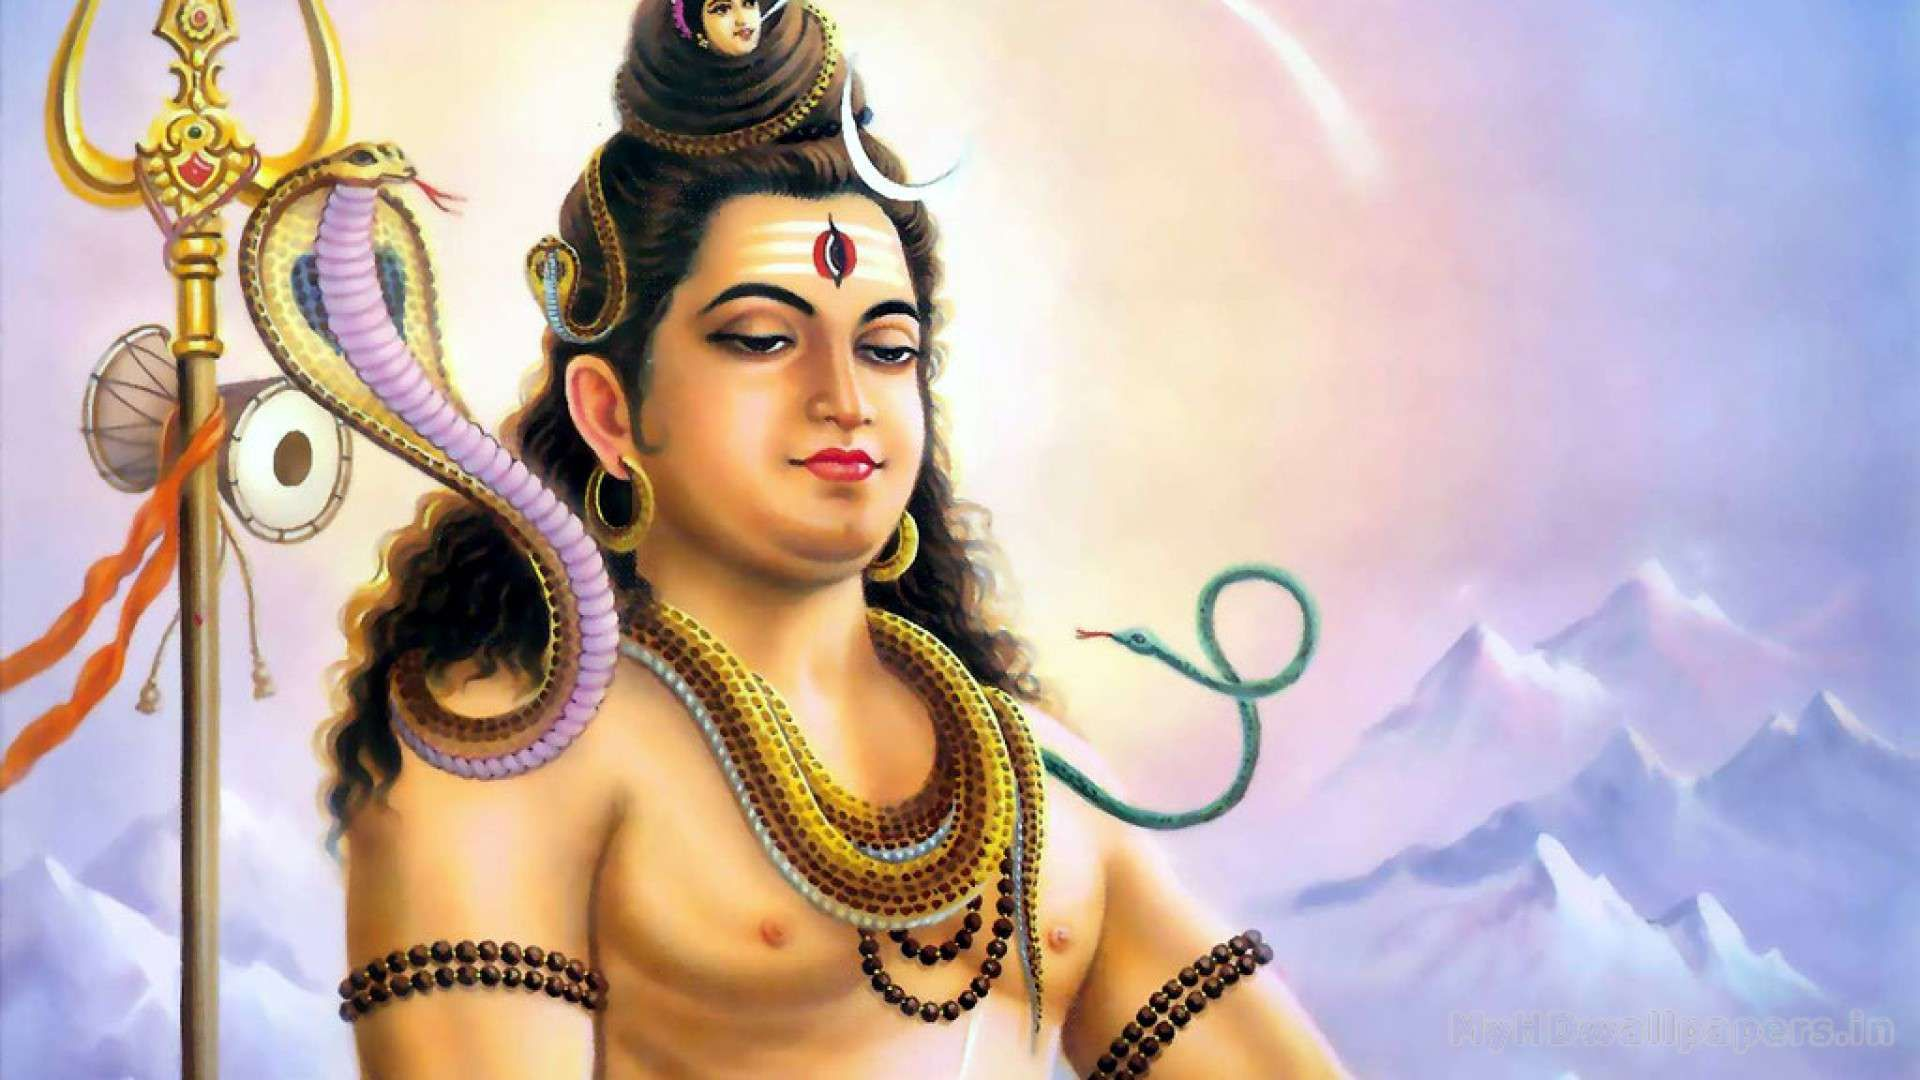 Shiva God desktop background free